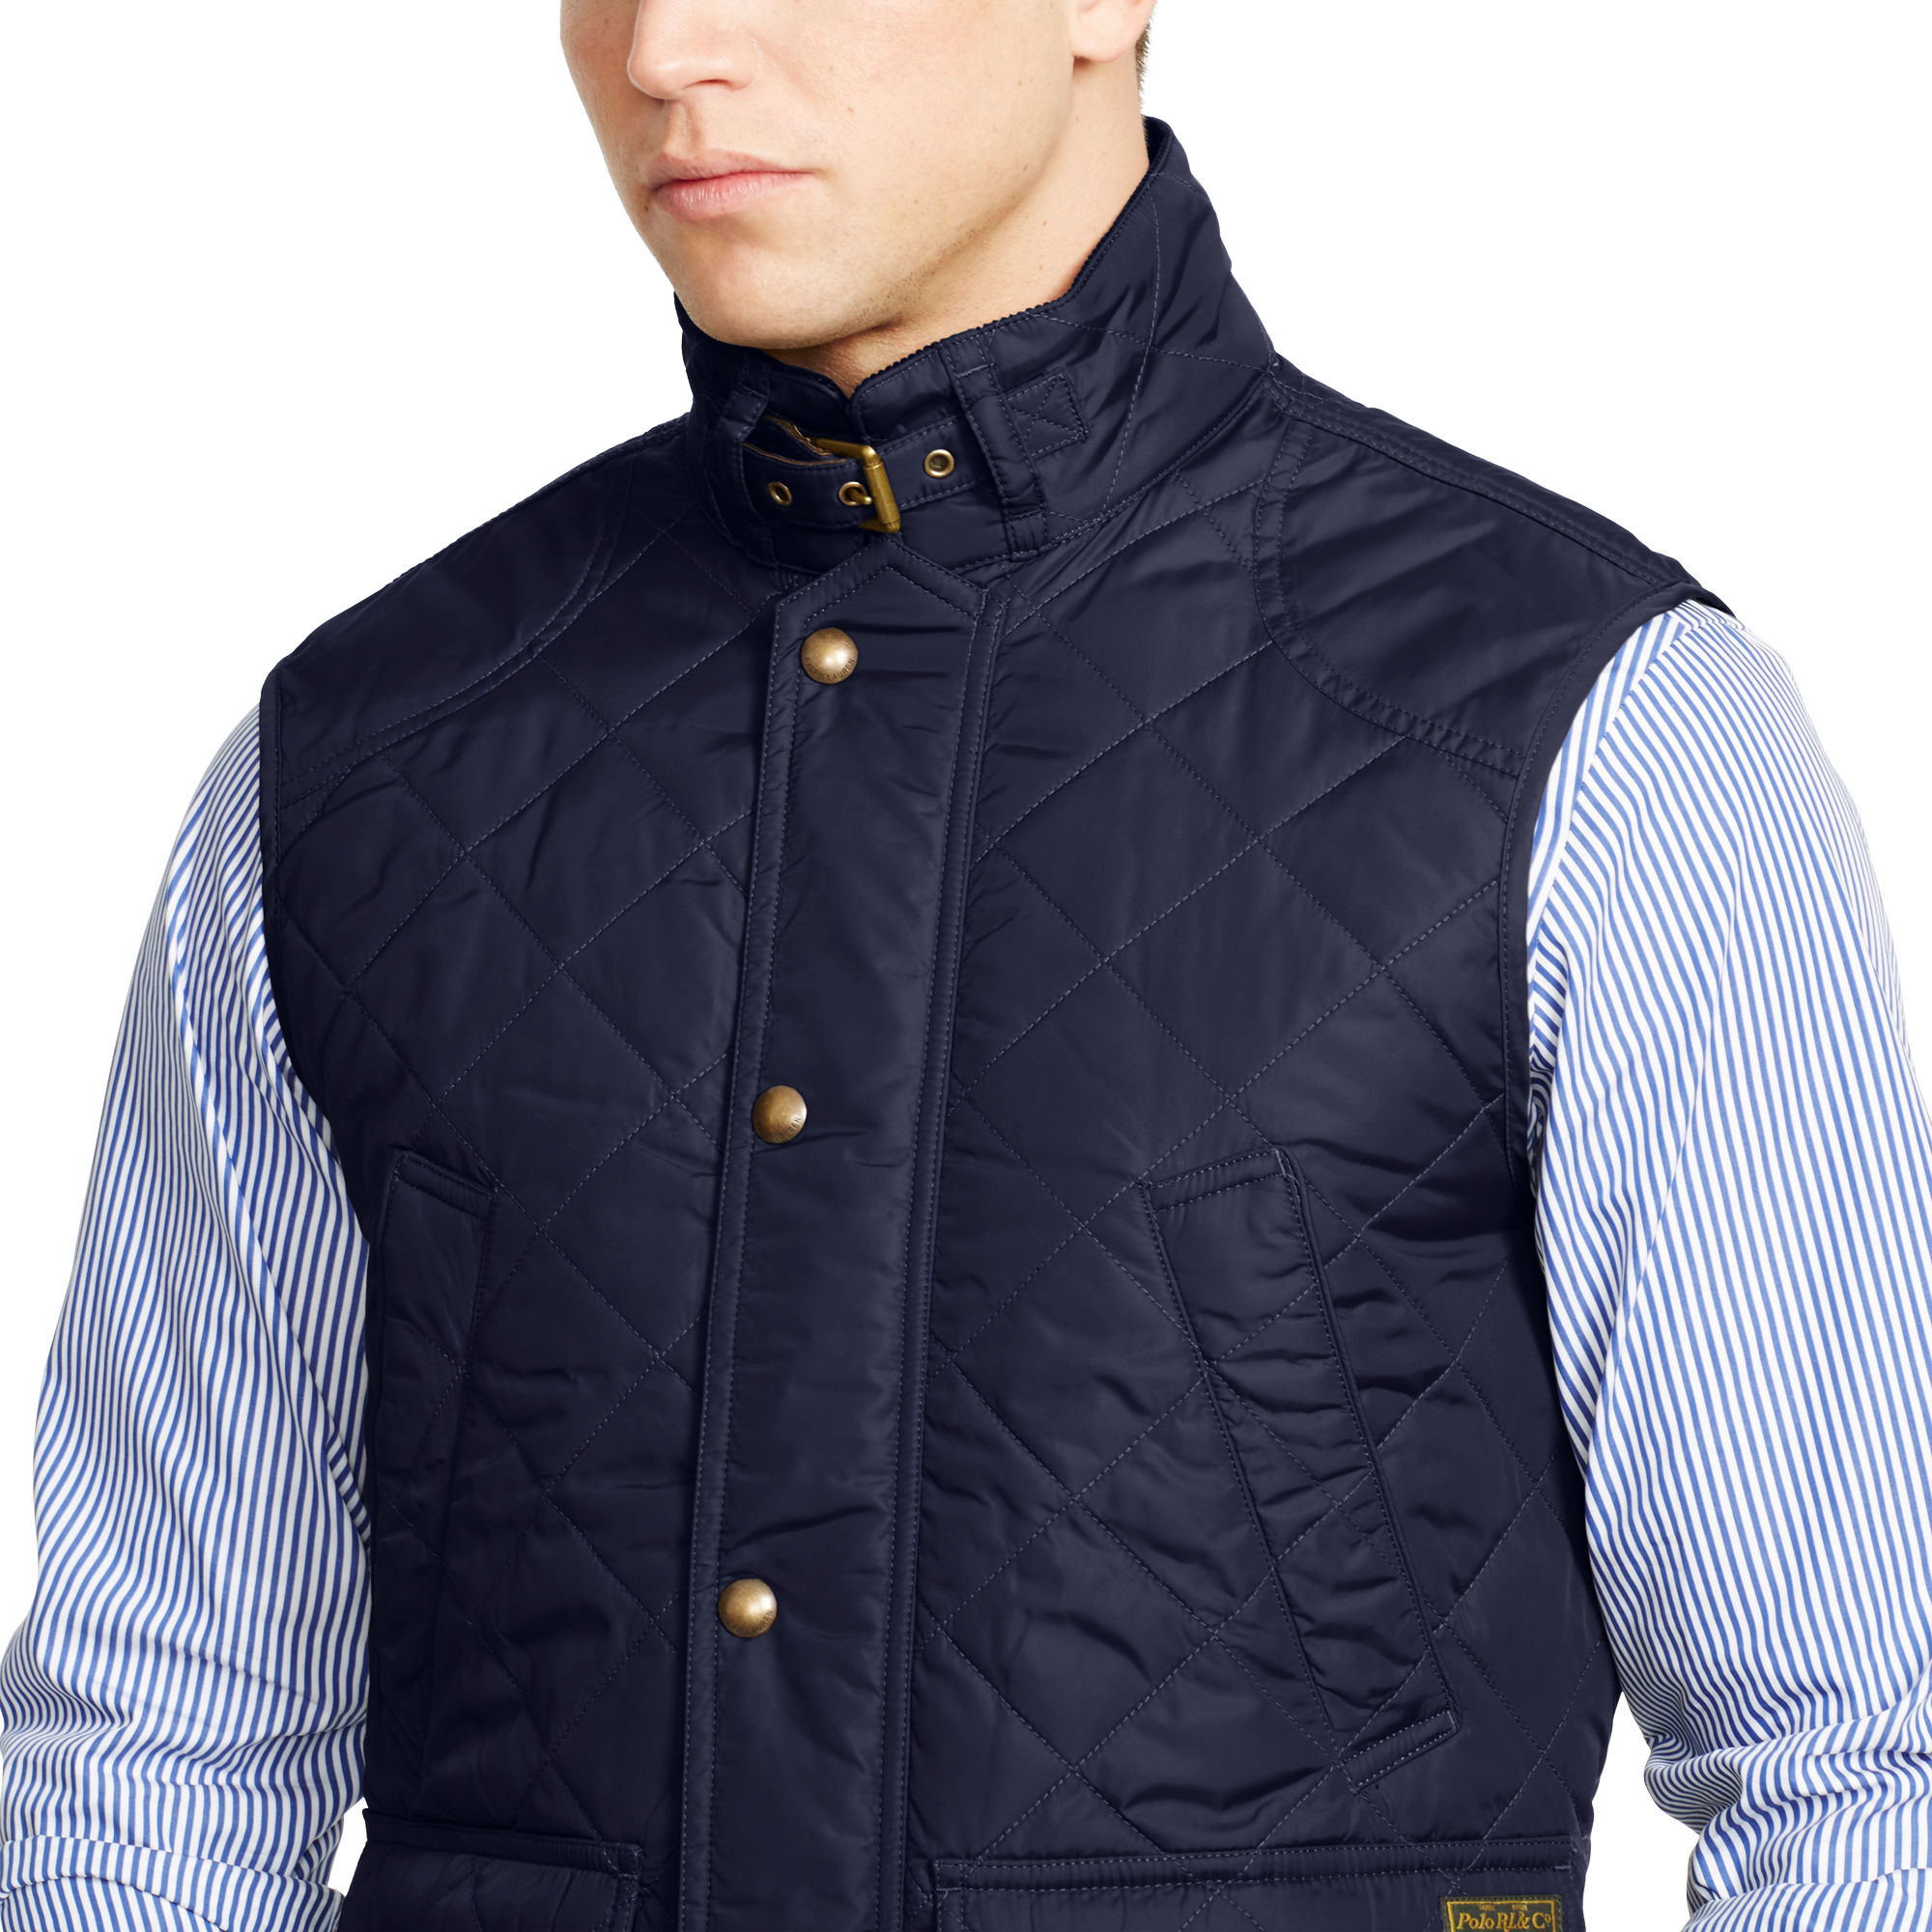 changer blanknyc jacket now clothing quilted quilt sale mens today ralph best faux women promotion leather life lauren buy img moto